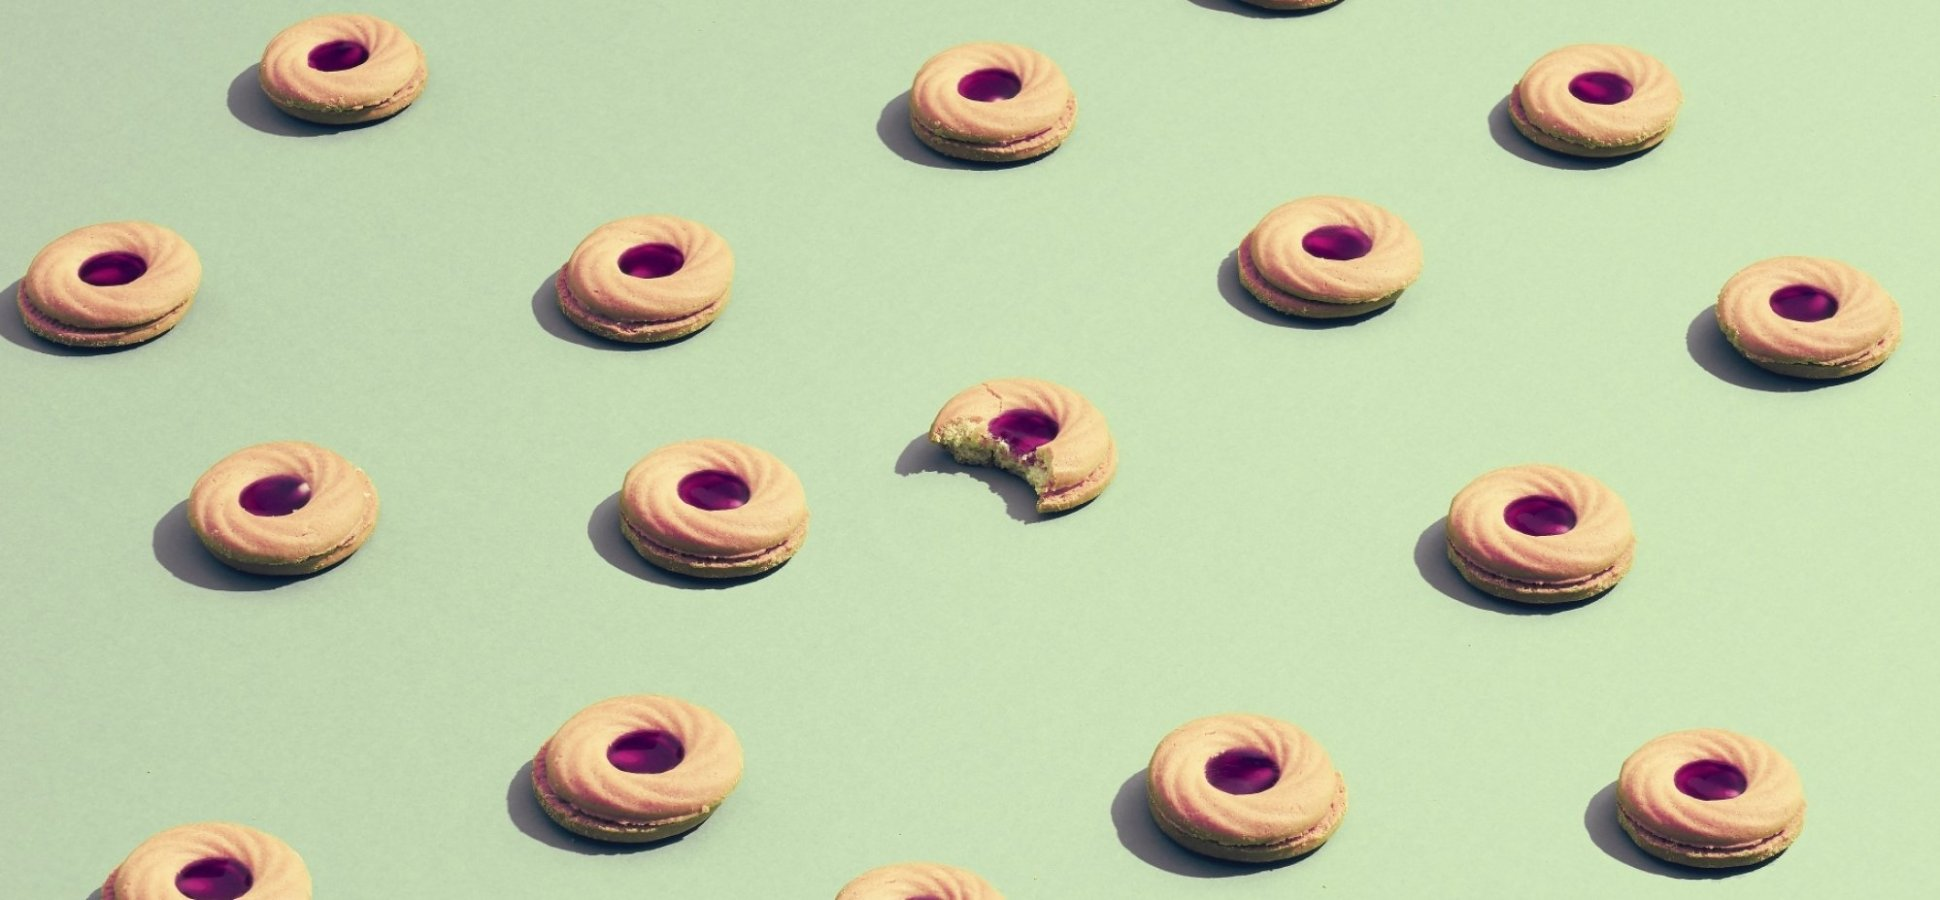 10 Strategies That Work Better Than Willpower for Resisting Temptation